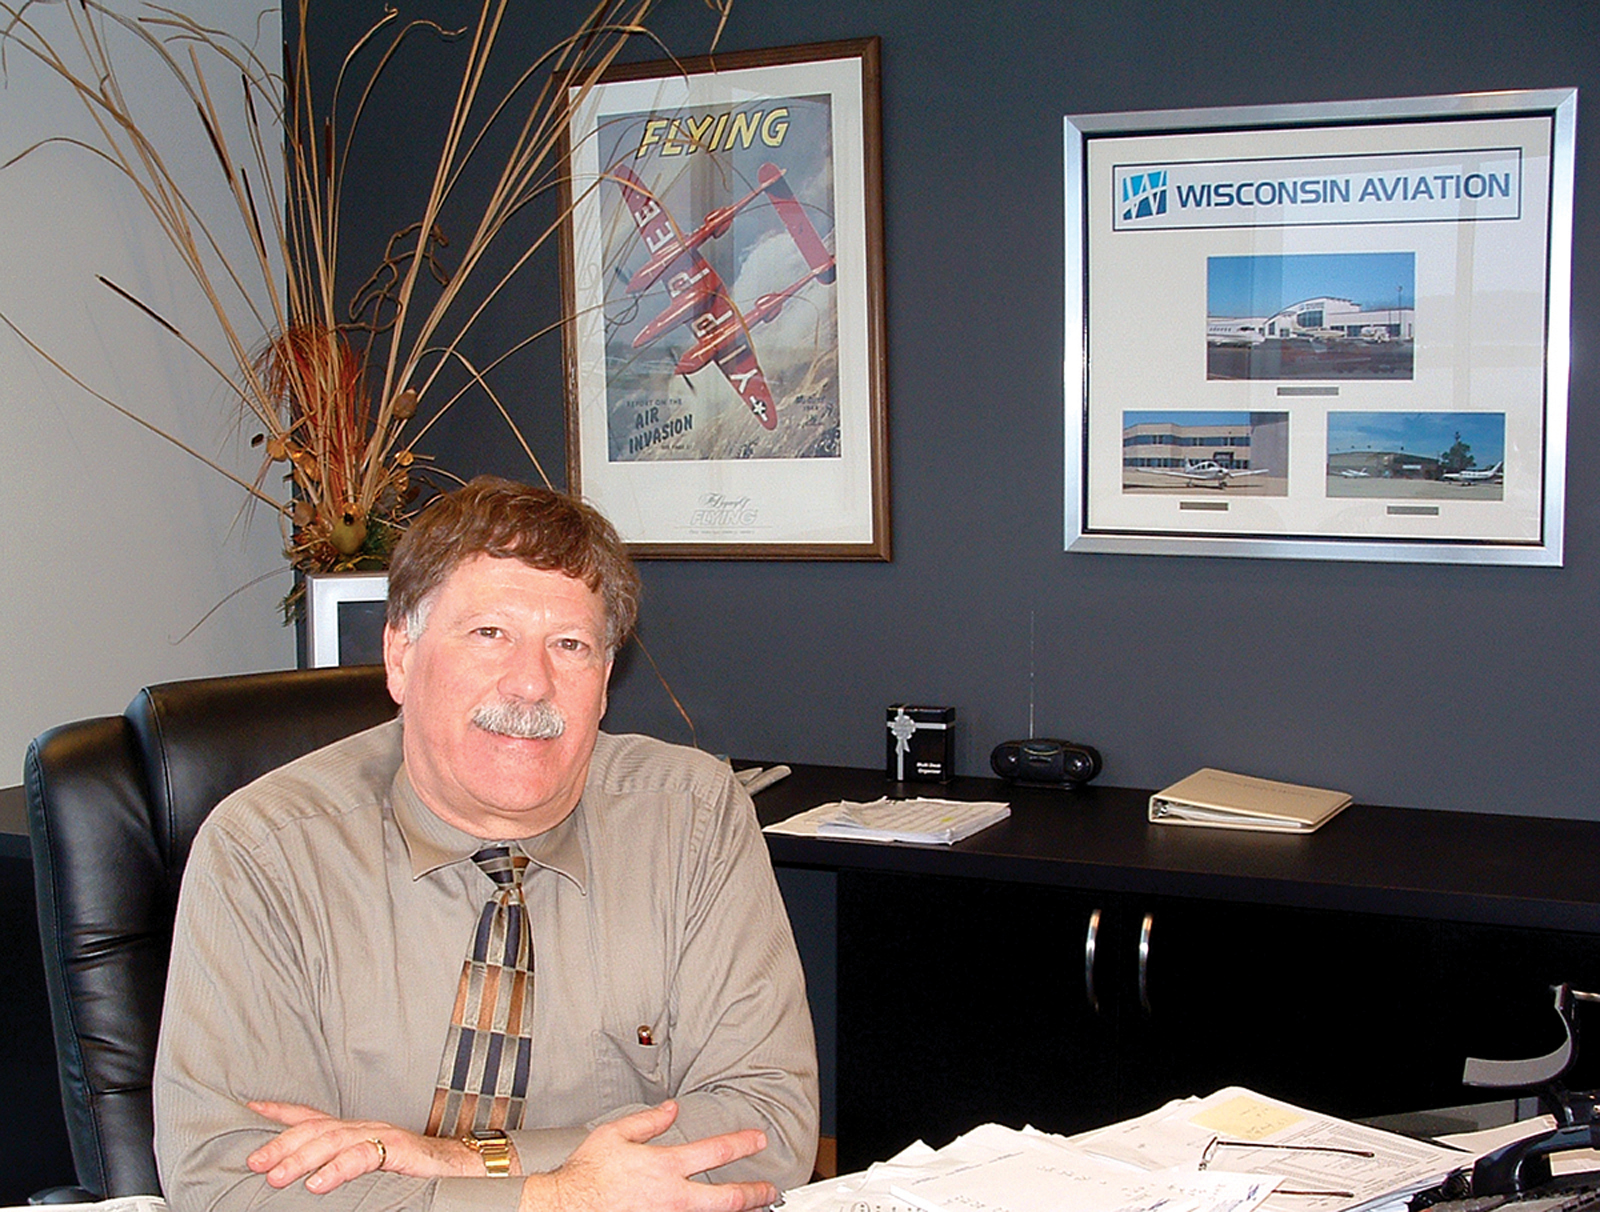 No Worse Time to Start an FBO, but Company Grows